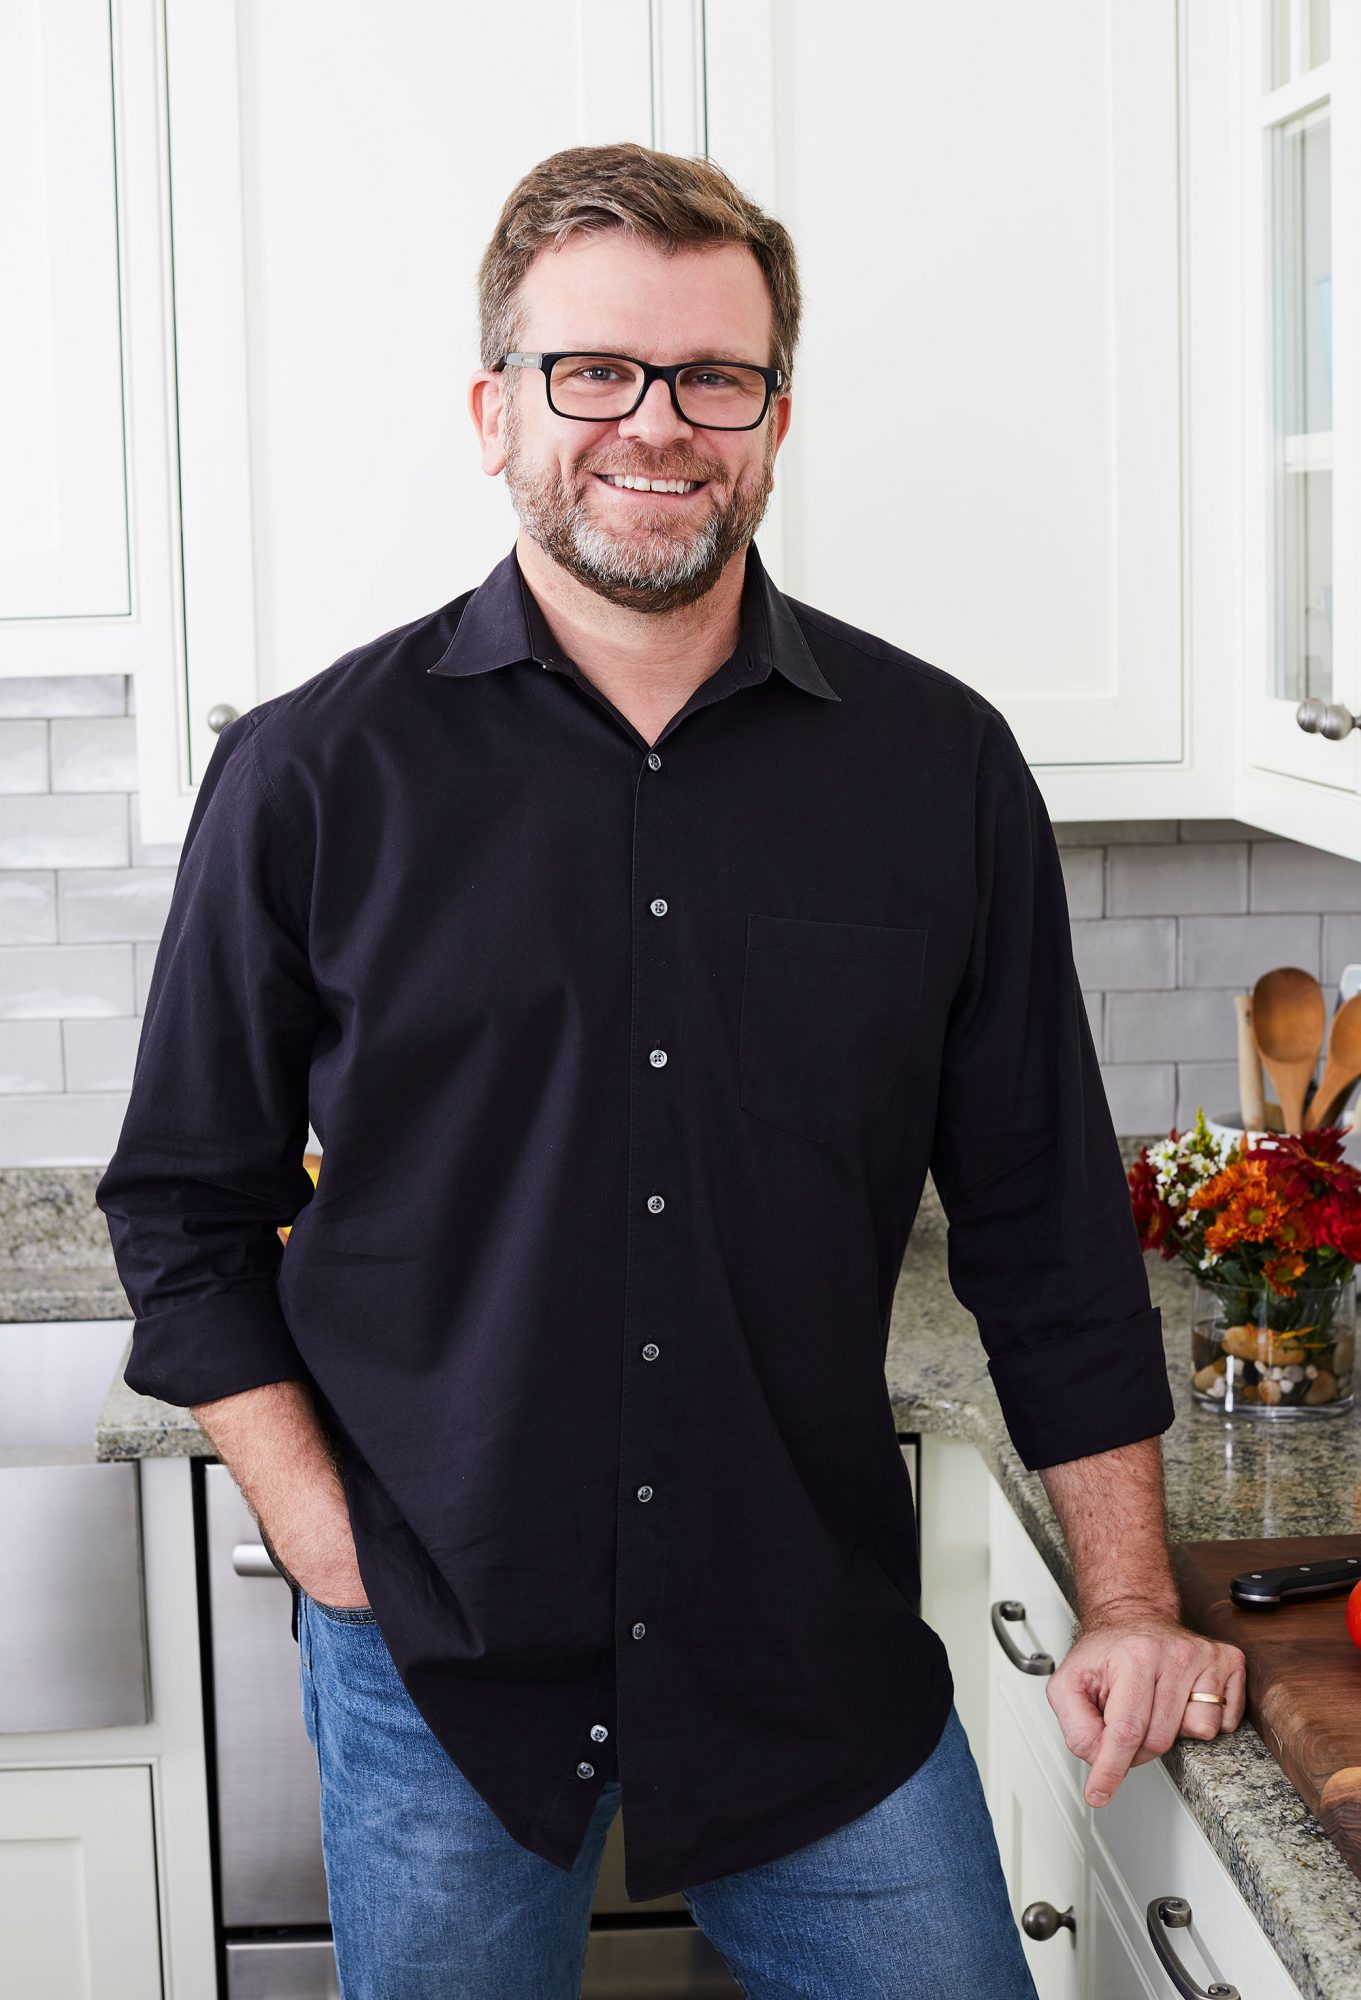 Profile photo of smiling man wearing a black button of shirt in a bright white kitchen